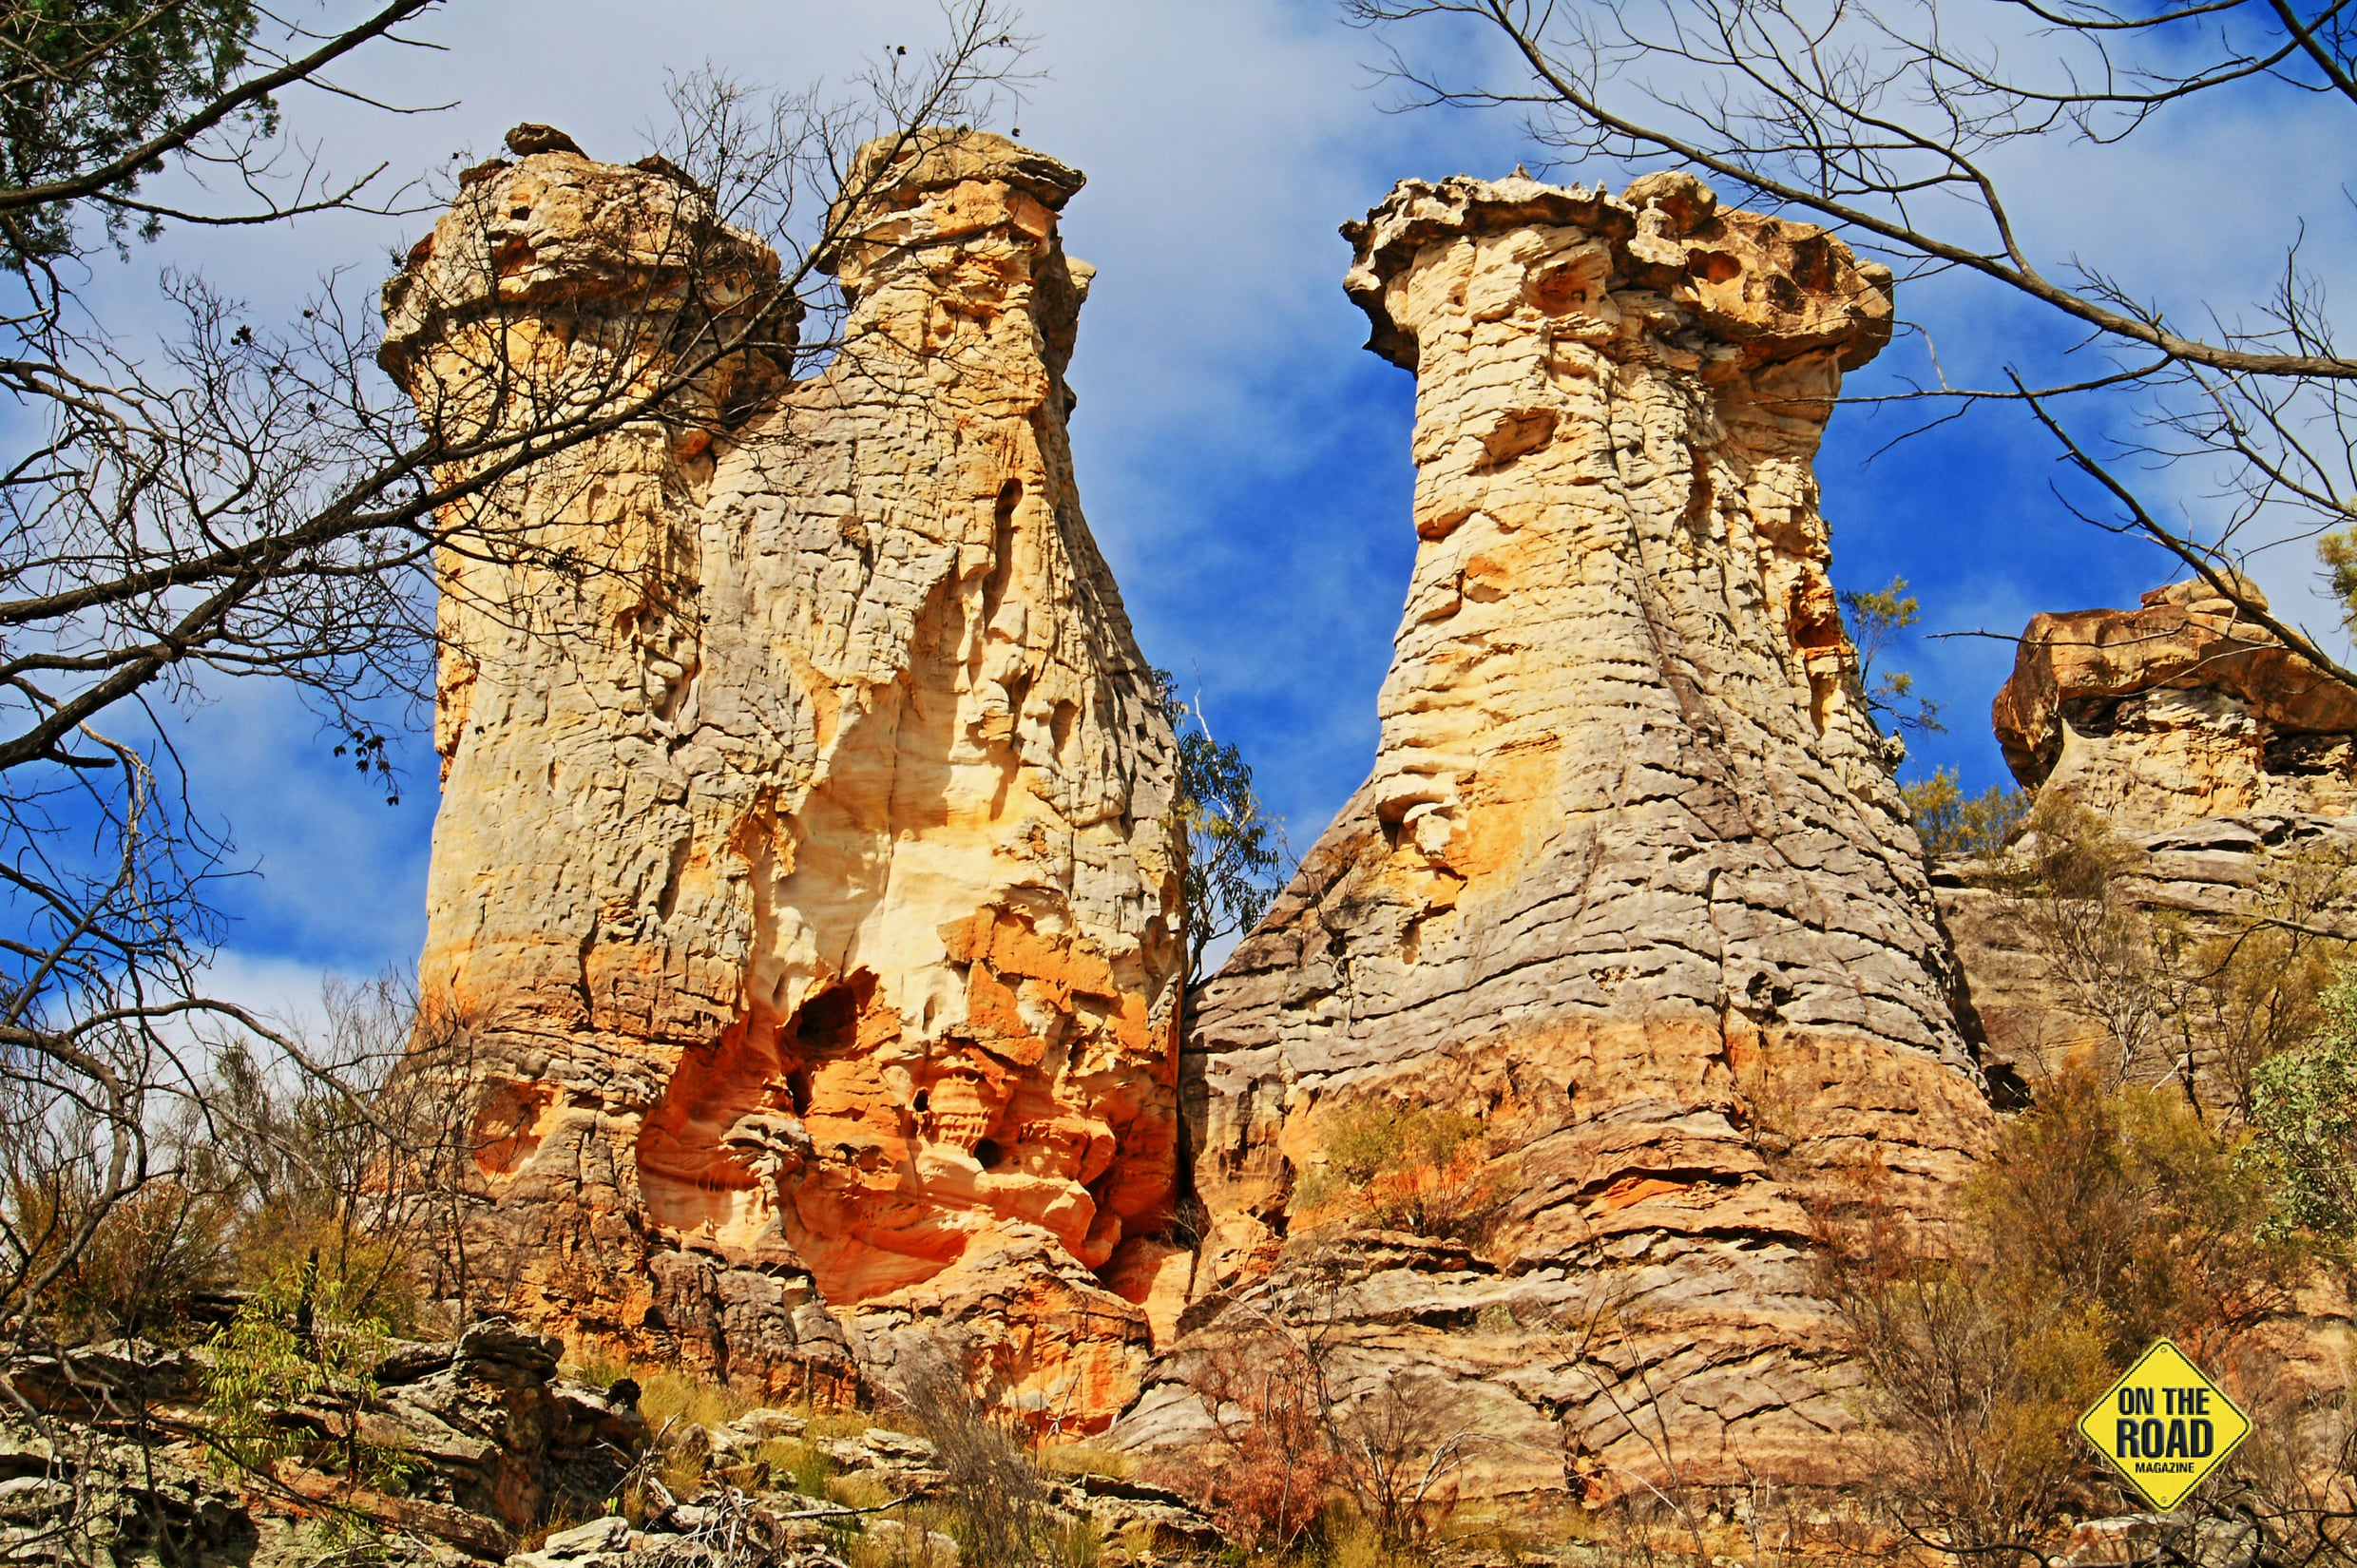 The final amazing sandstone formation and one of the most memorable, The Chimneys